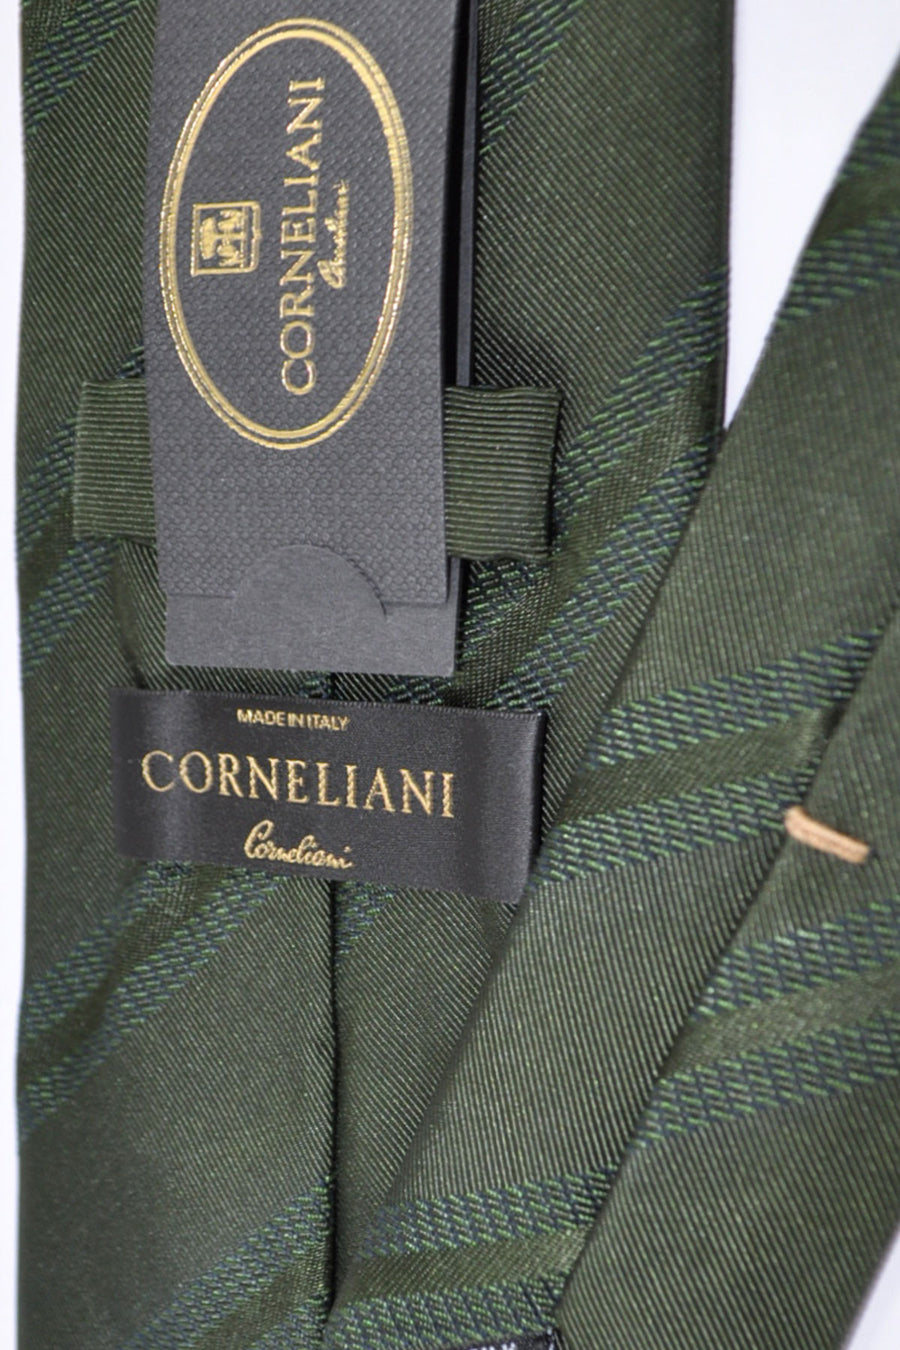 Corneliani Tie Dark Green Grosgrain